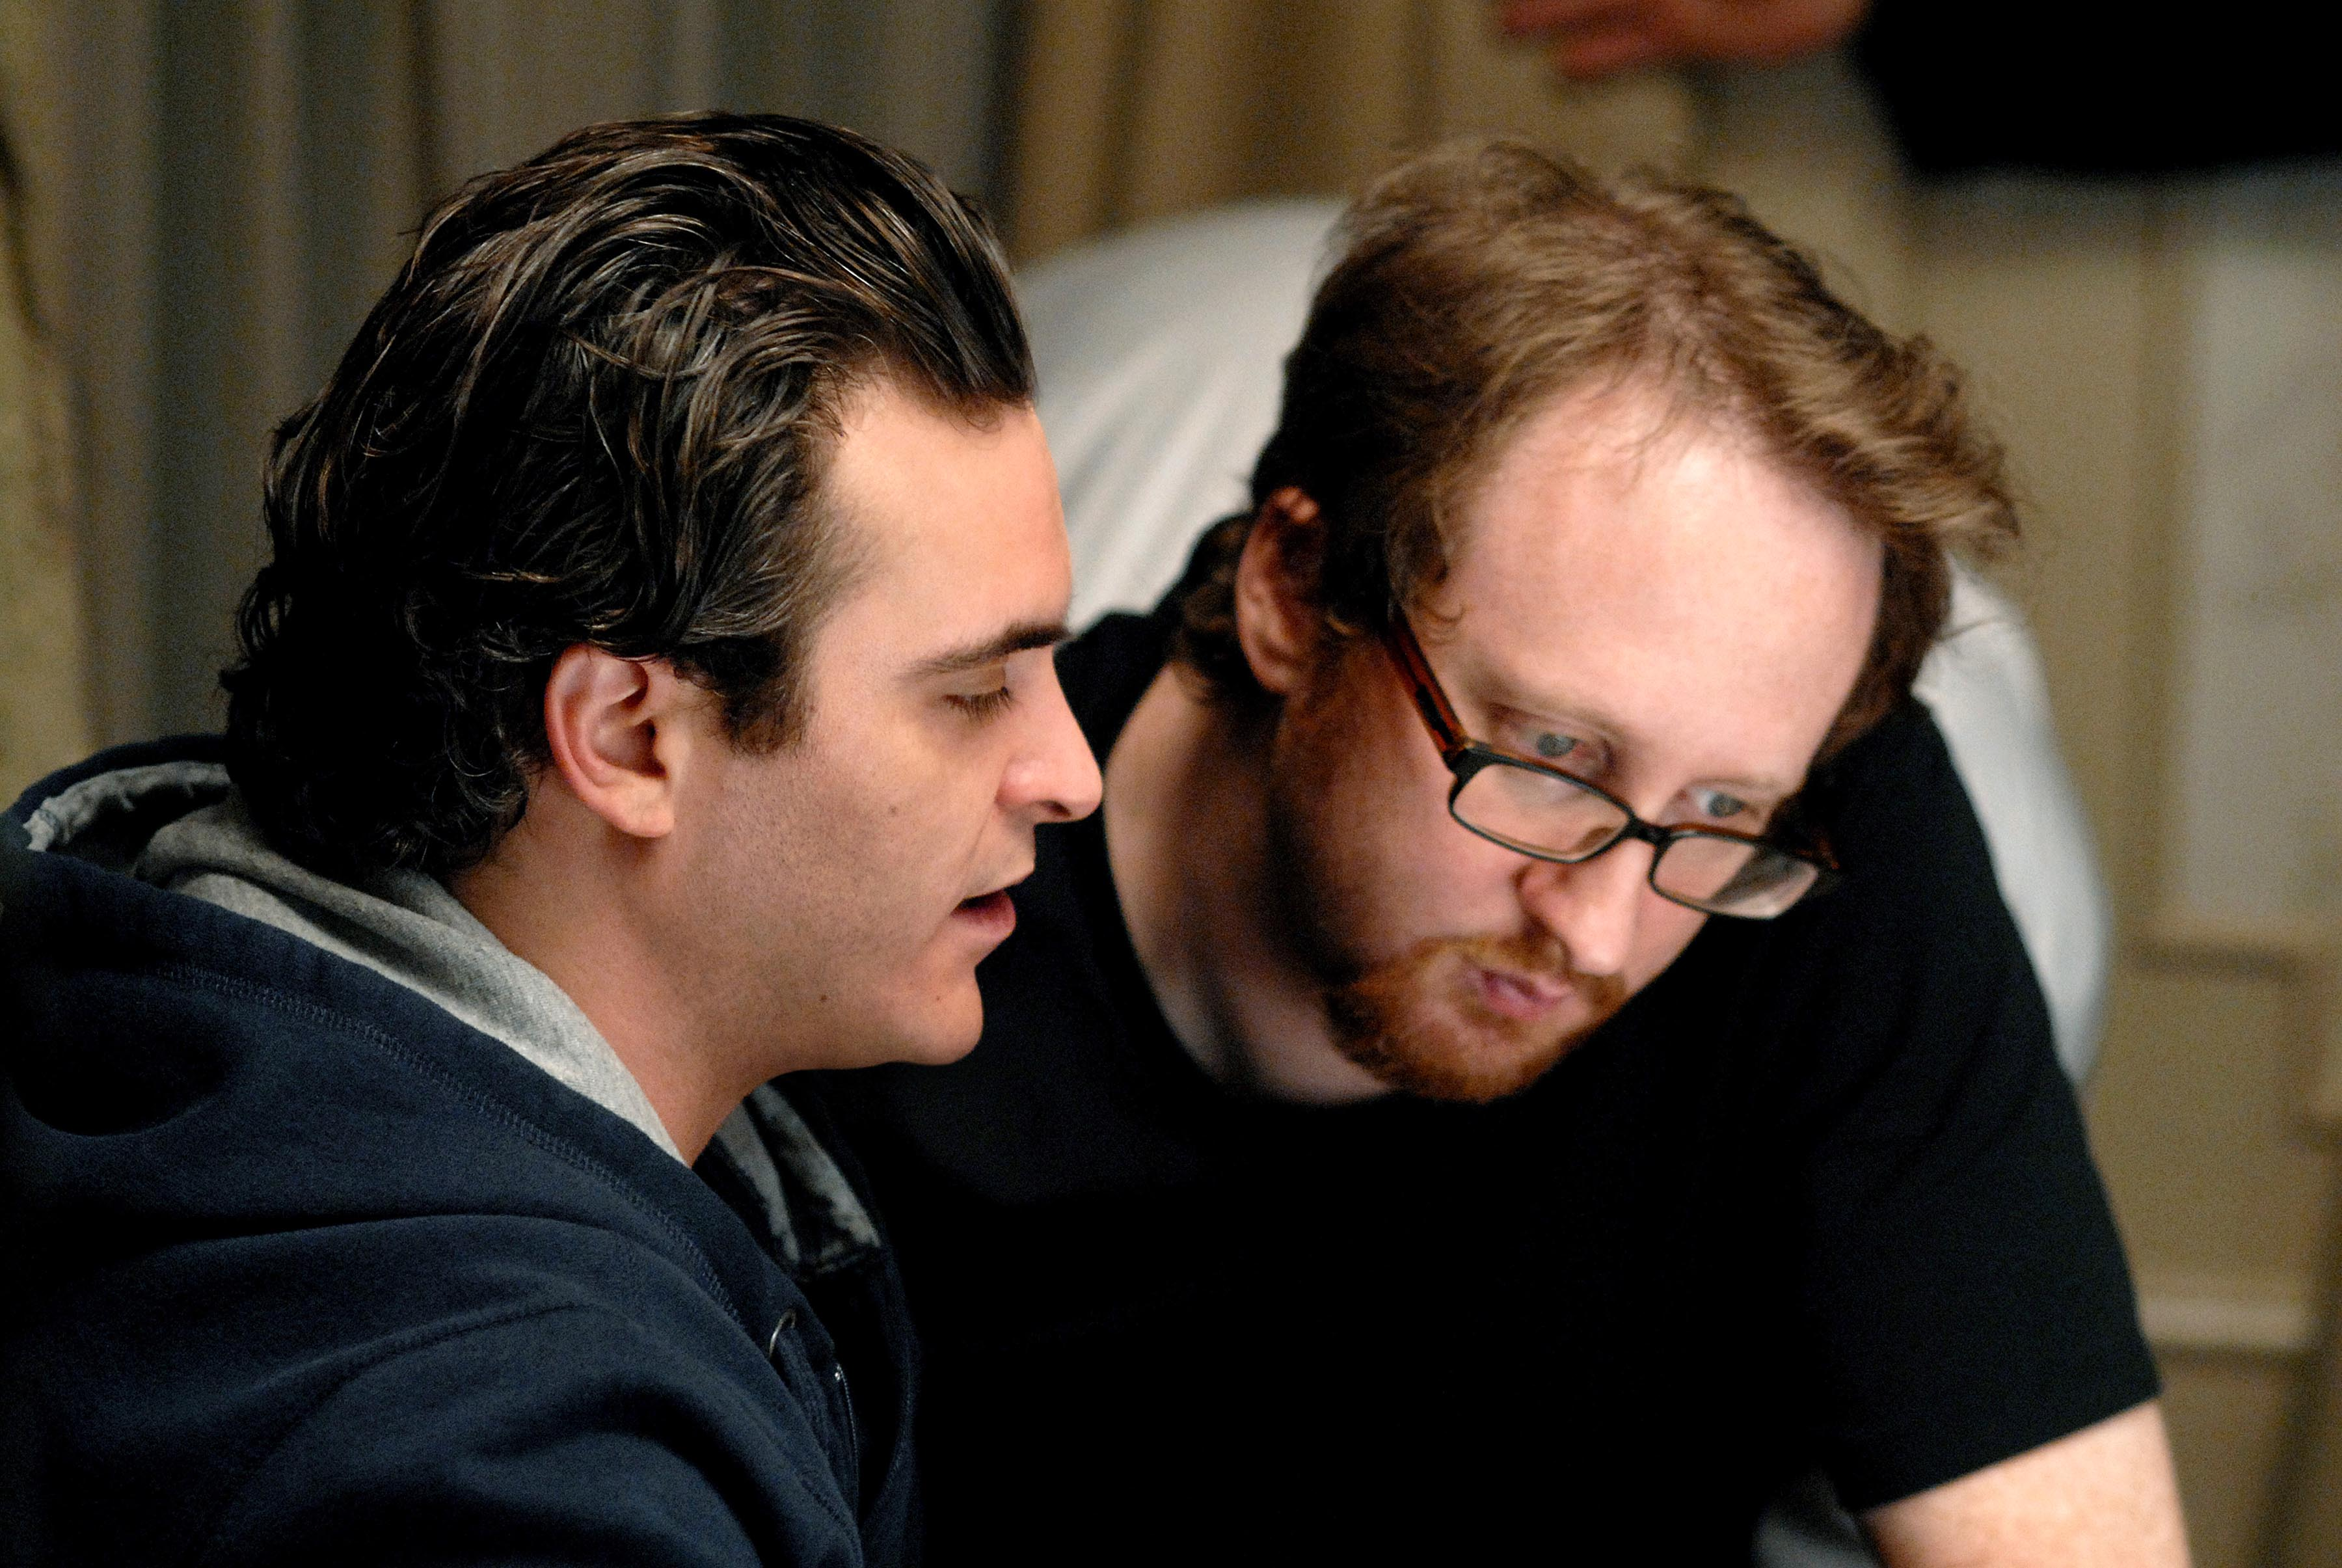 James Gray: Film Festivals are Problematic Because Directors and Critics are Bad At Judging Films